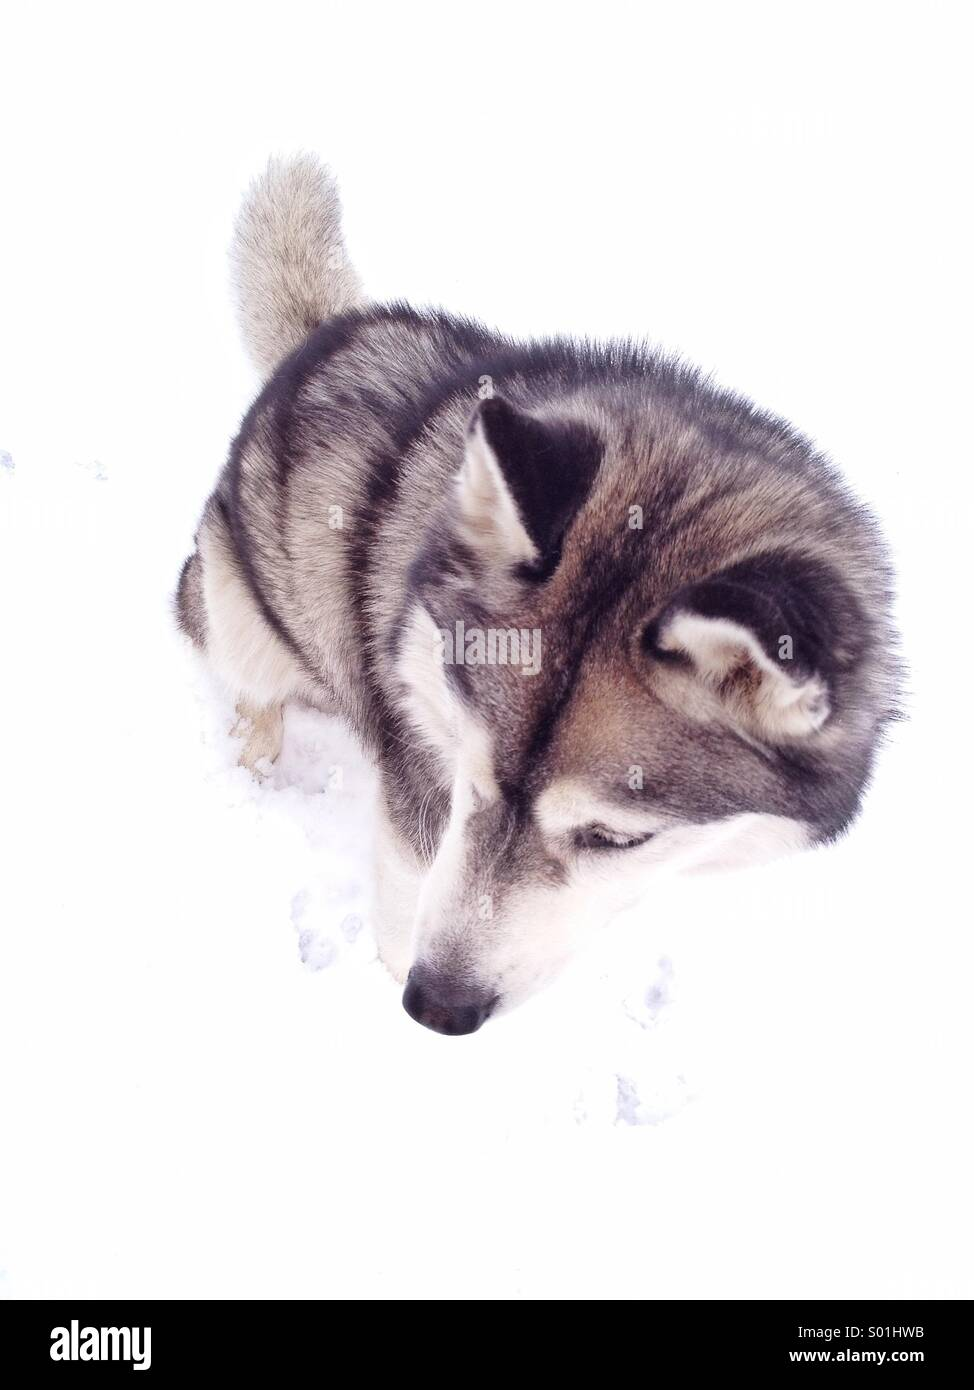 Looking down perspective of a husky on snow. - Stock Image